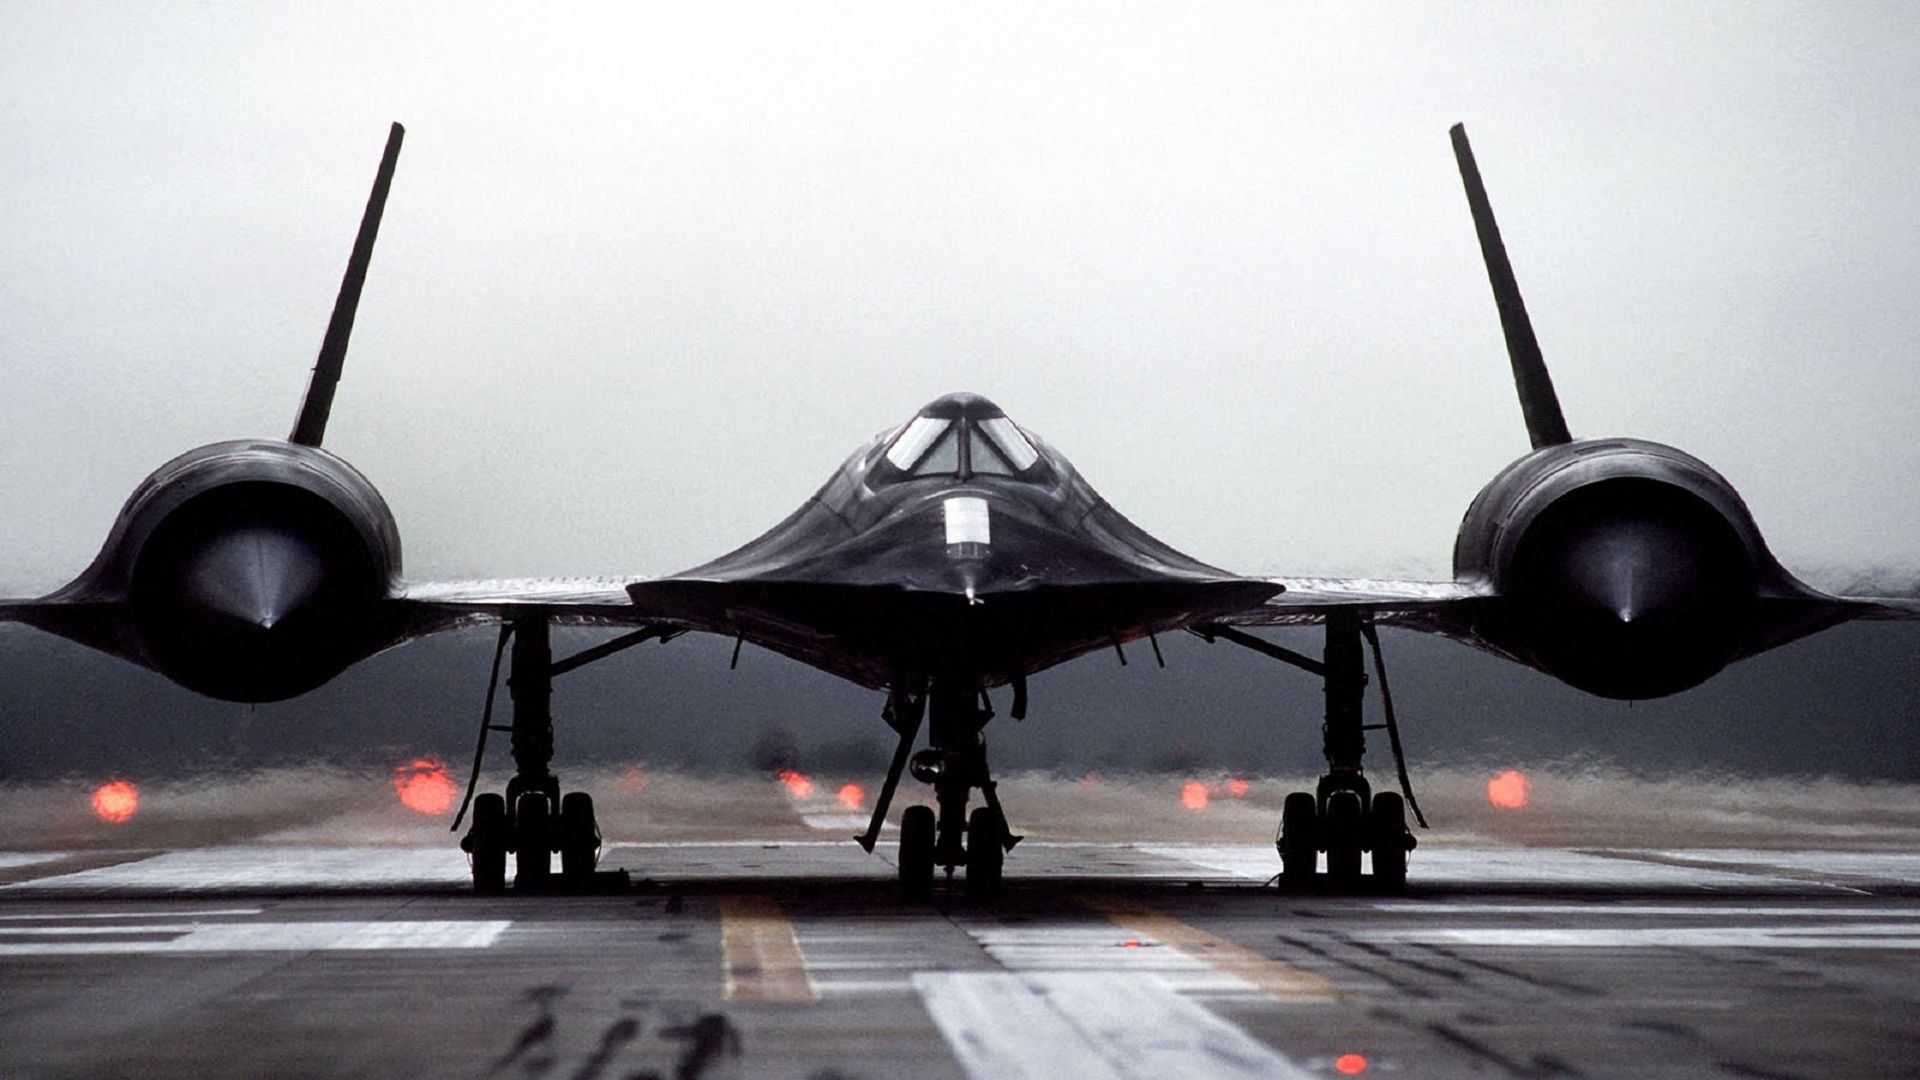 front-view-of-sr-71-aircraft.jpg